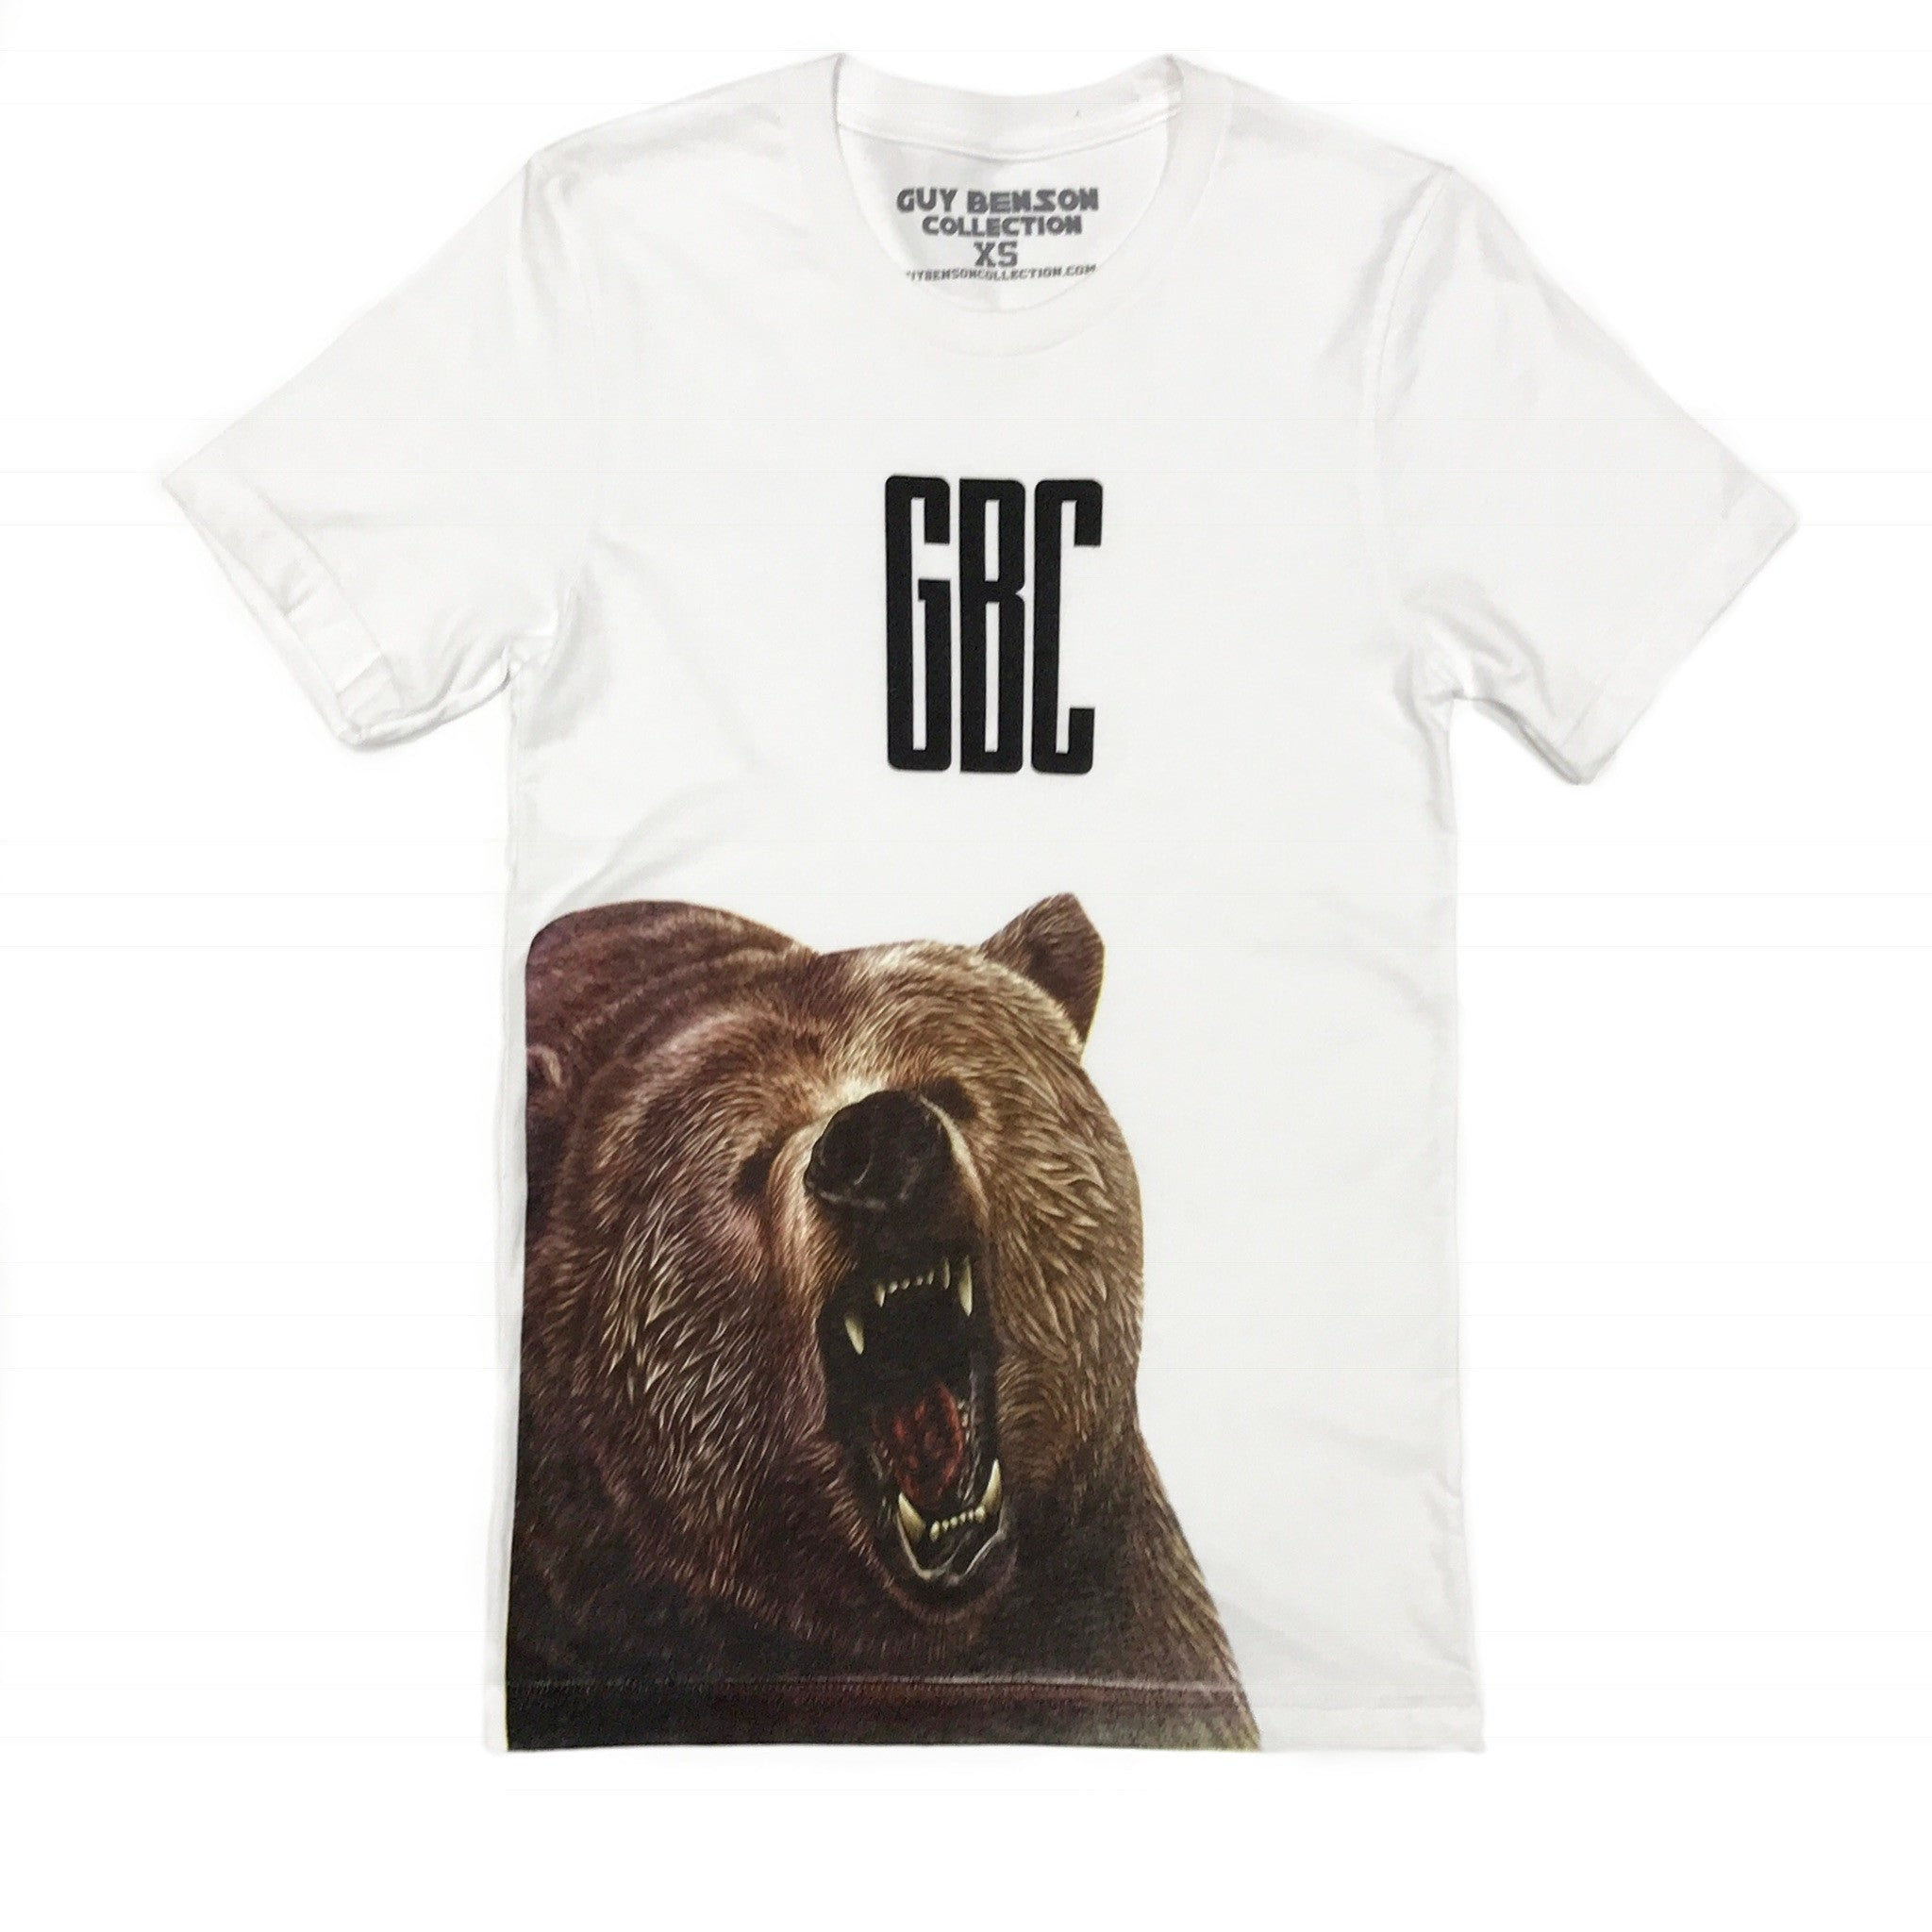 Guy Benson Collection Bear Tee - White